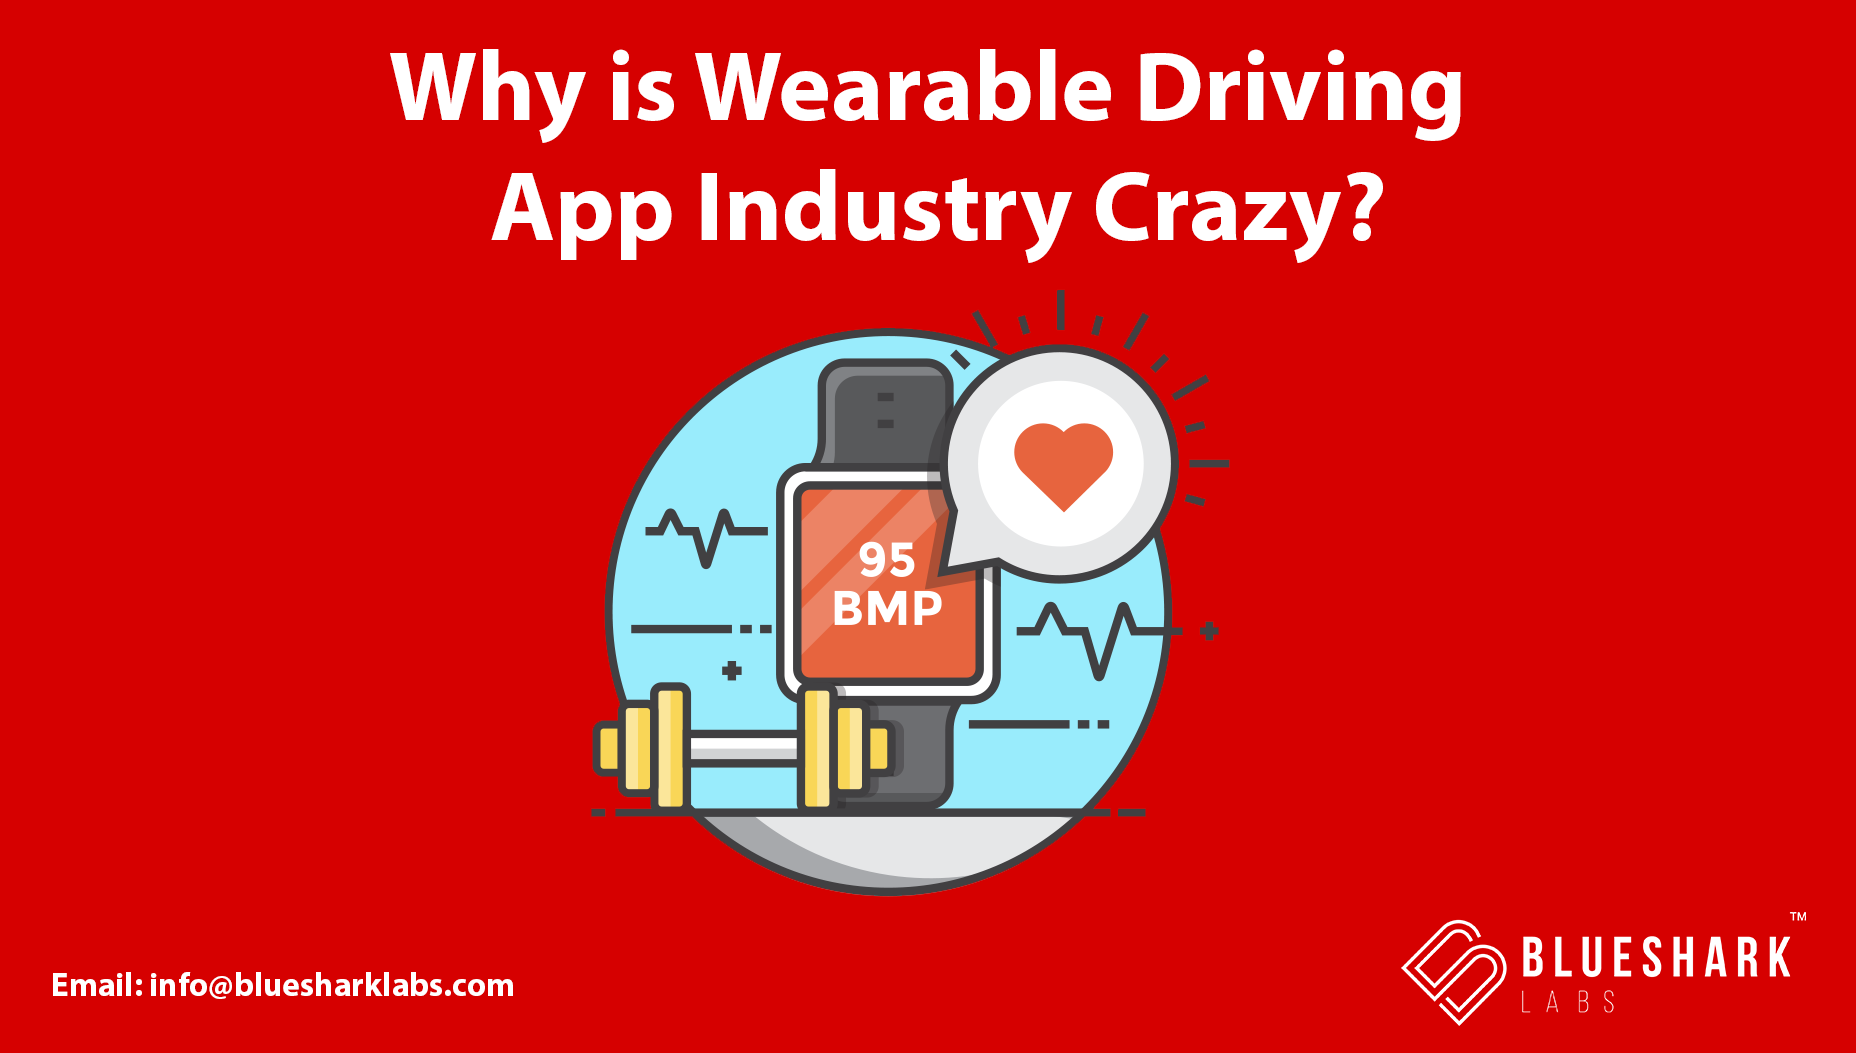 Why is Wearable Driving App Industry Crazy?